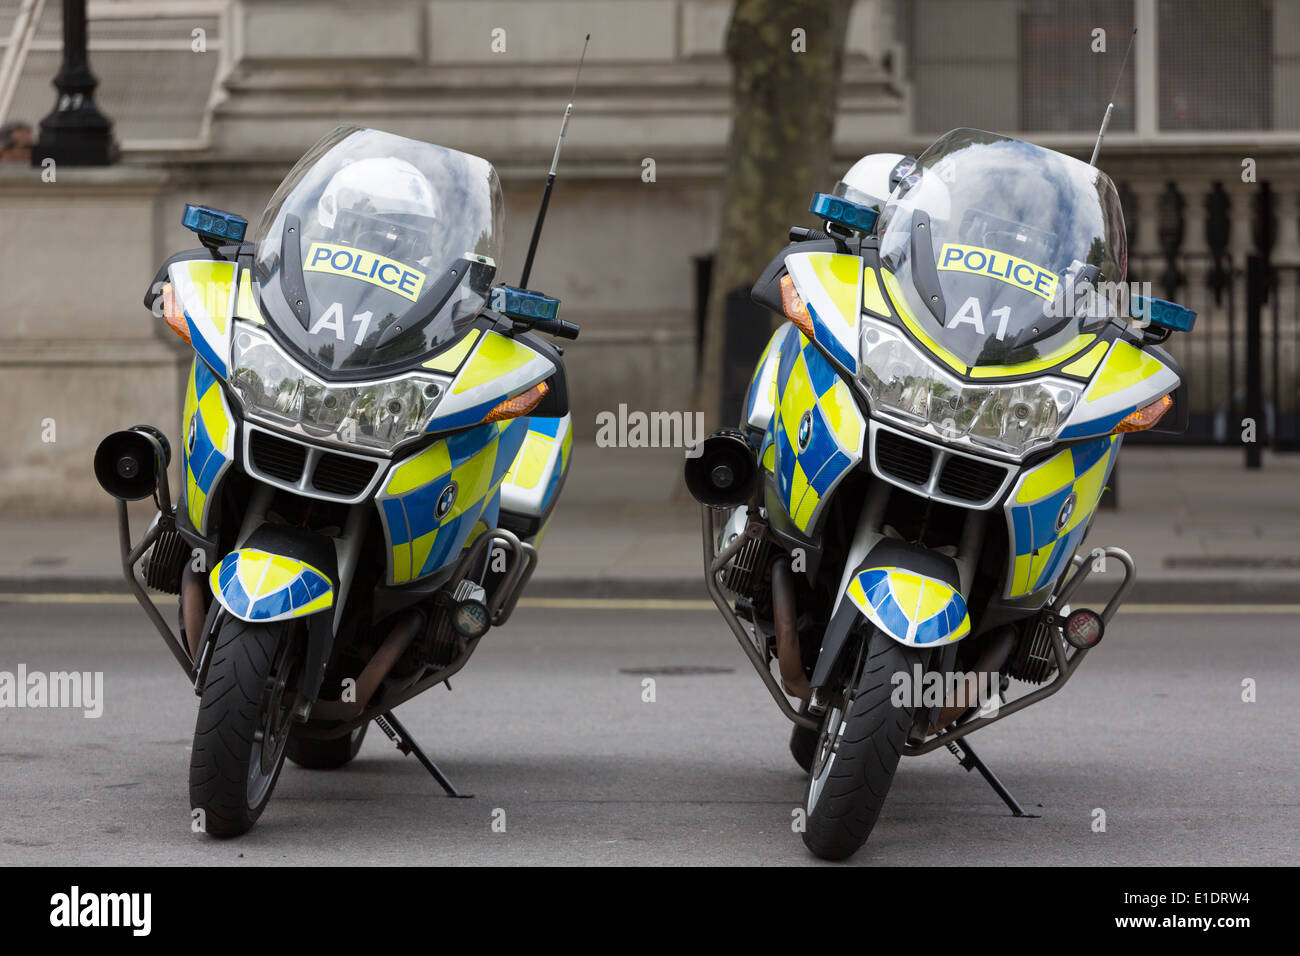 Two Metropolitan Police motorbikes on stands in London - Stock Image